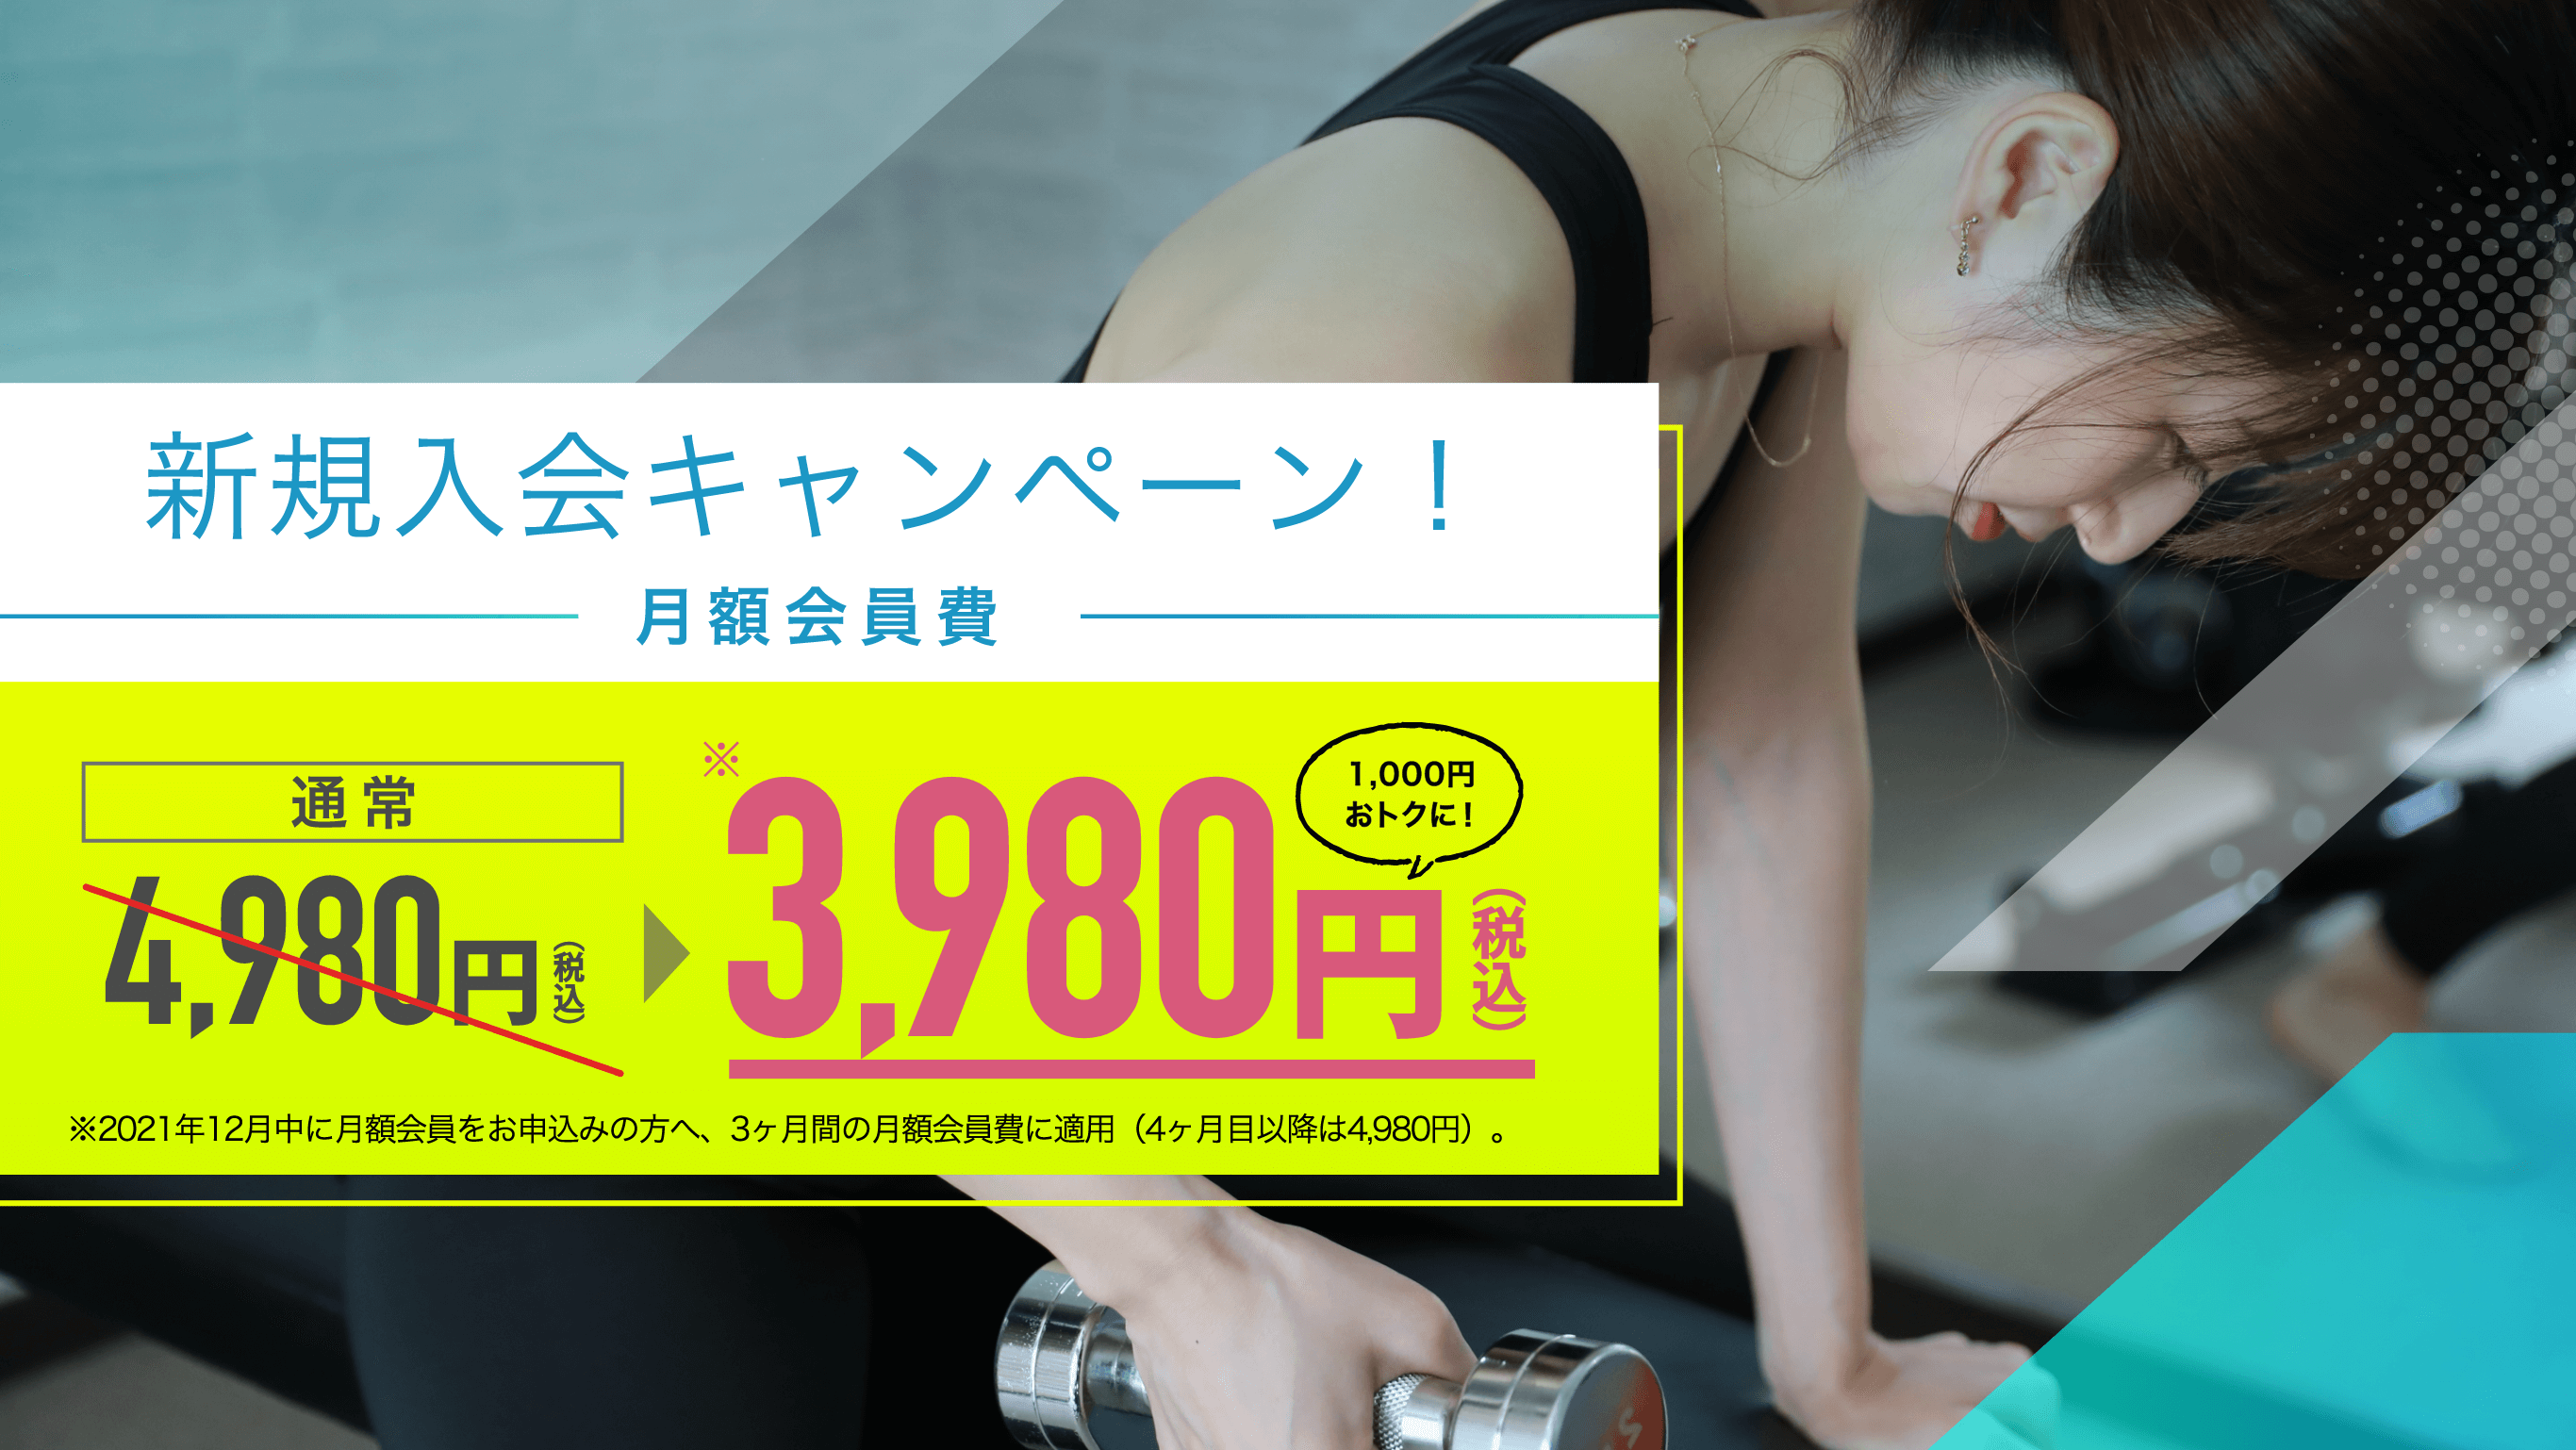 OPEN CAMPAIGN 月額会員費 通常4,980円が3,980円 2021年6月末まで